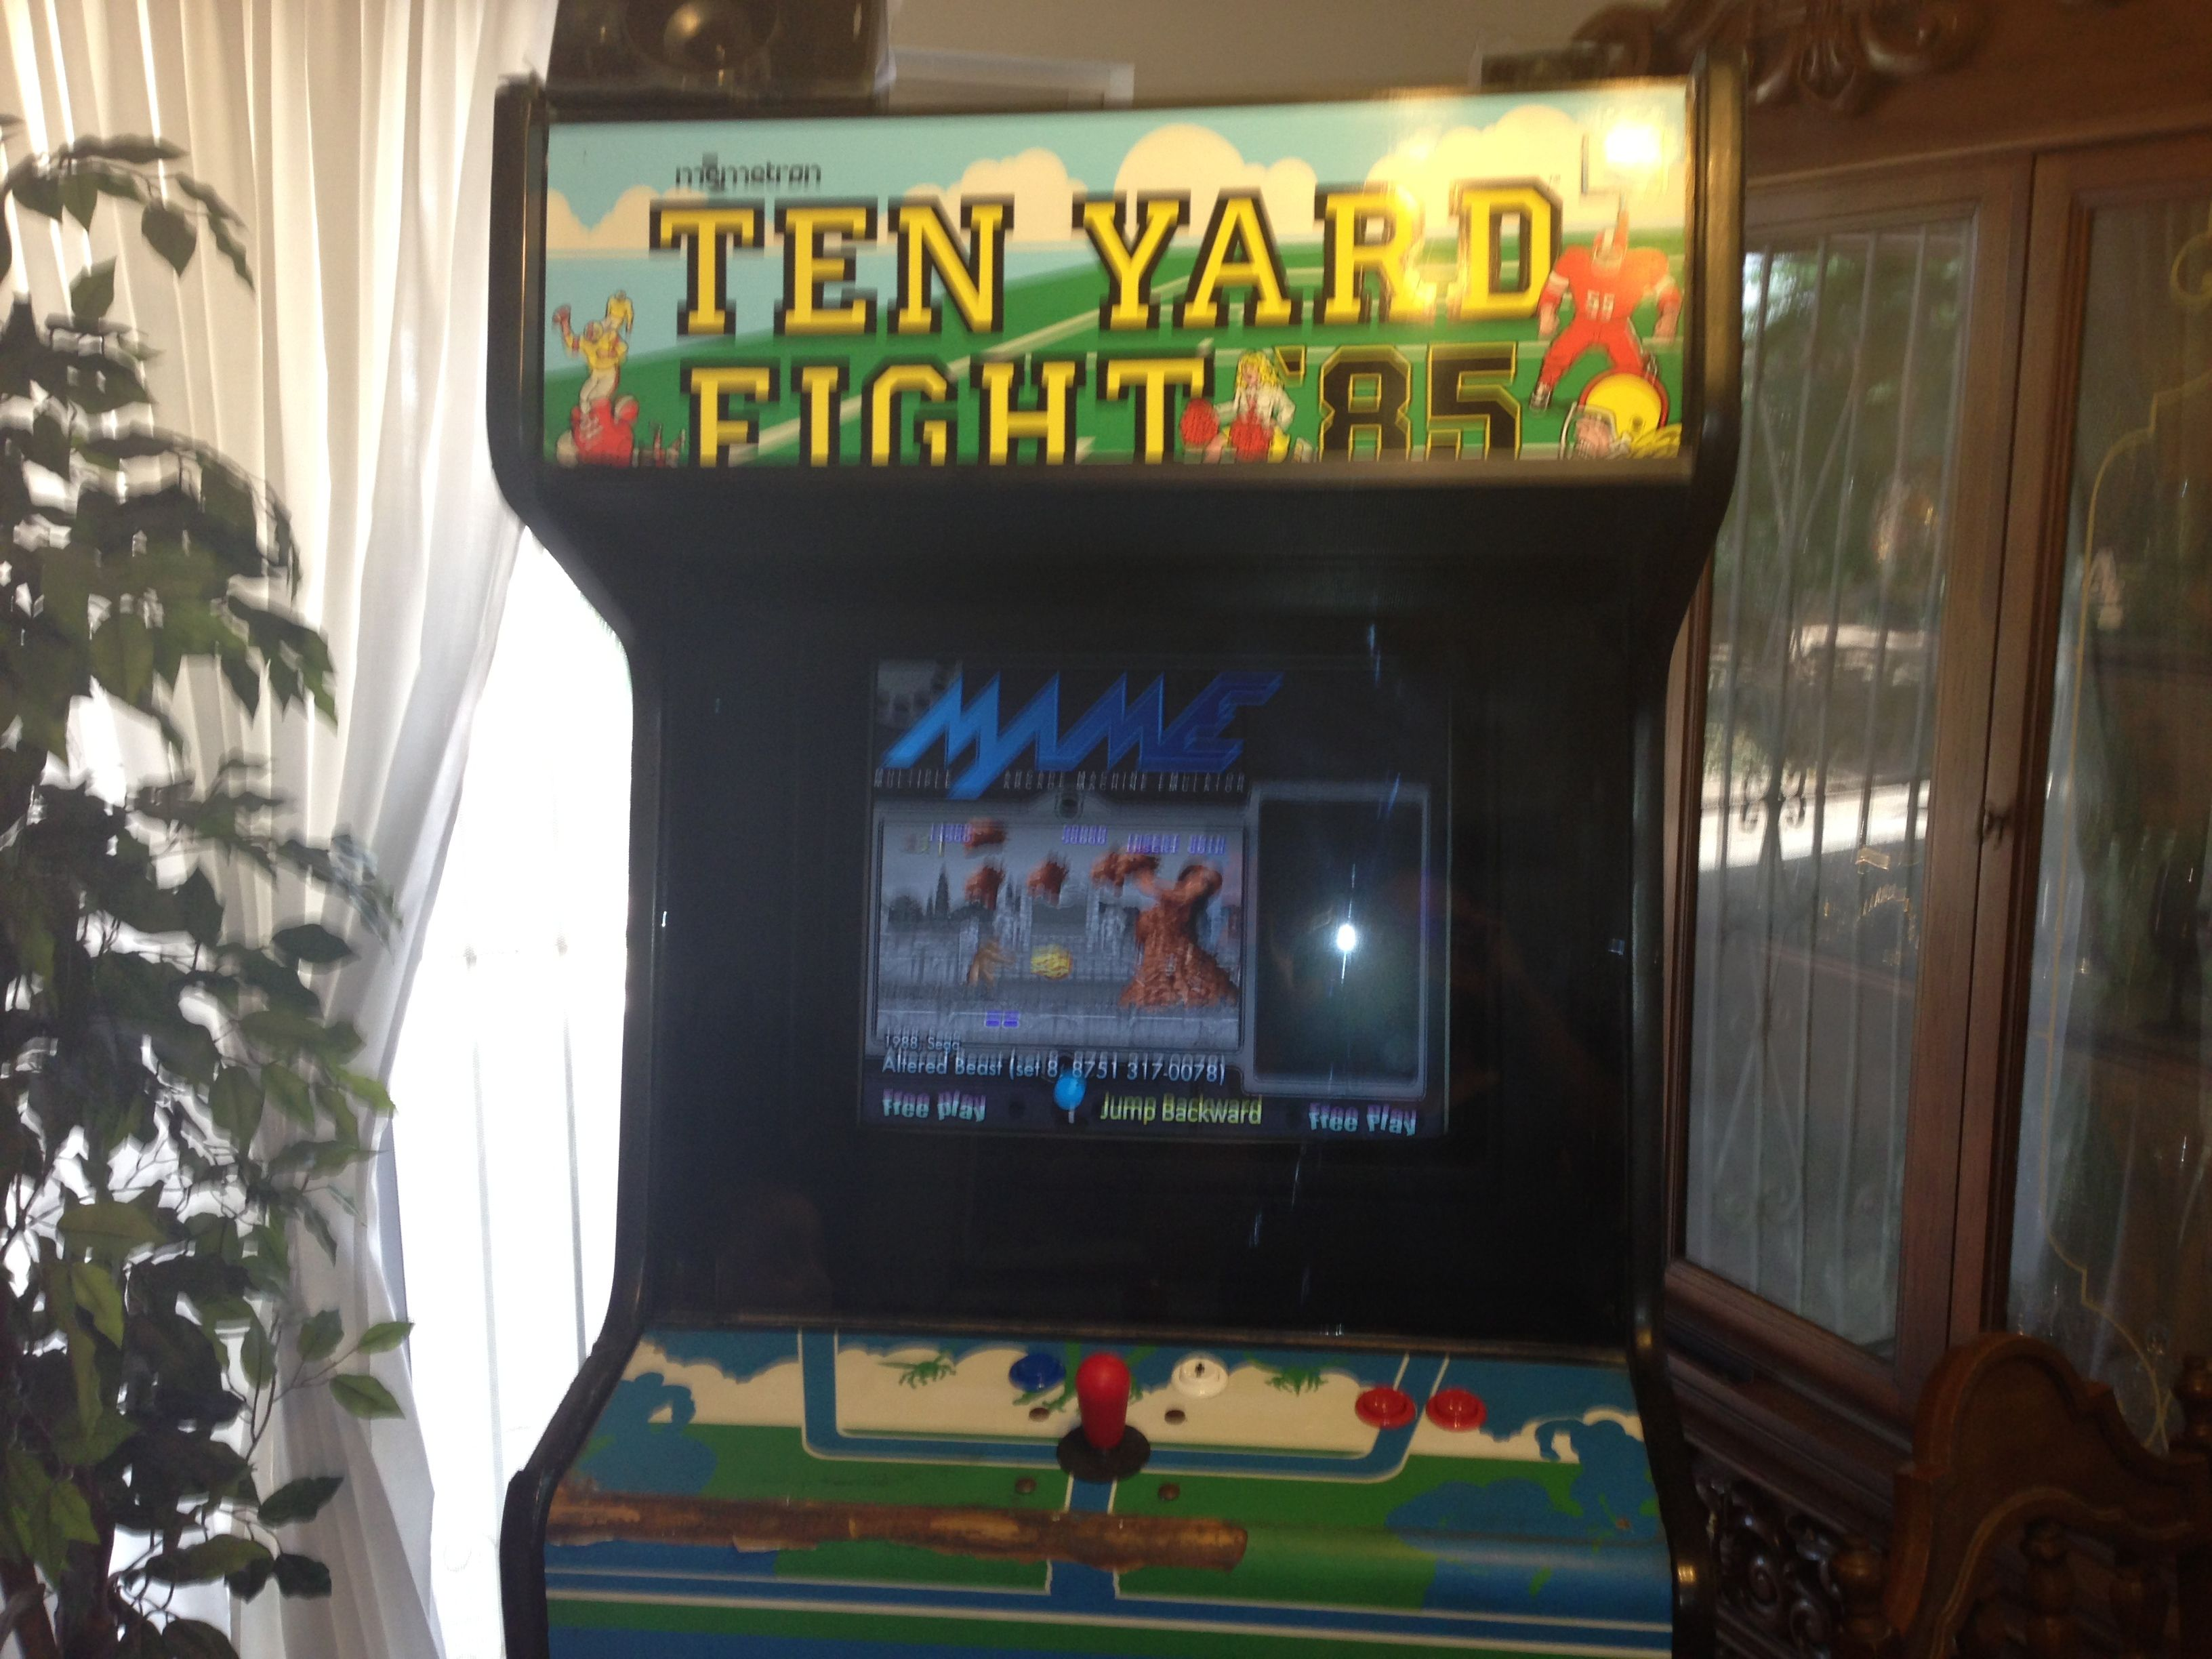 10 yard fight arcade conversion by Undead Technologies